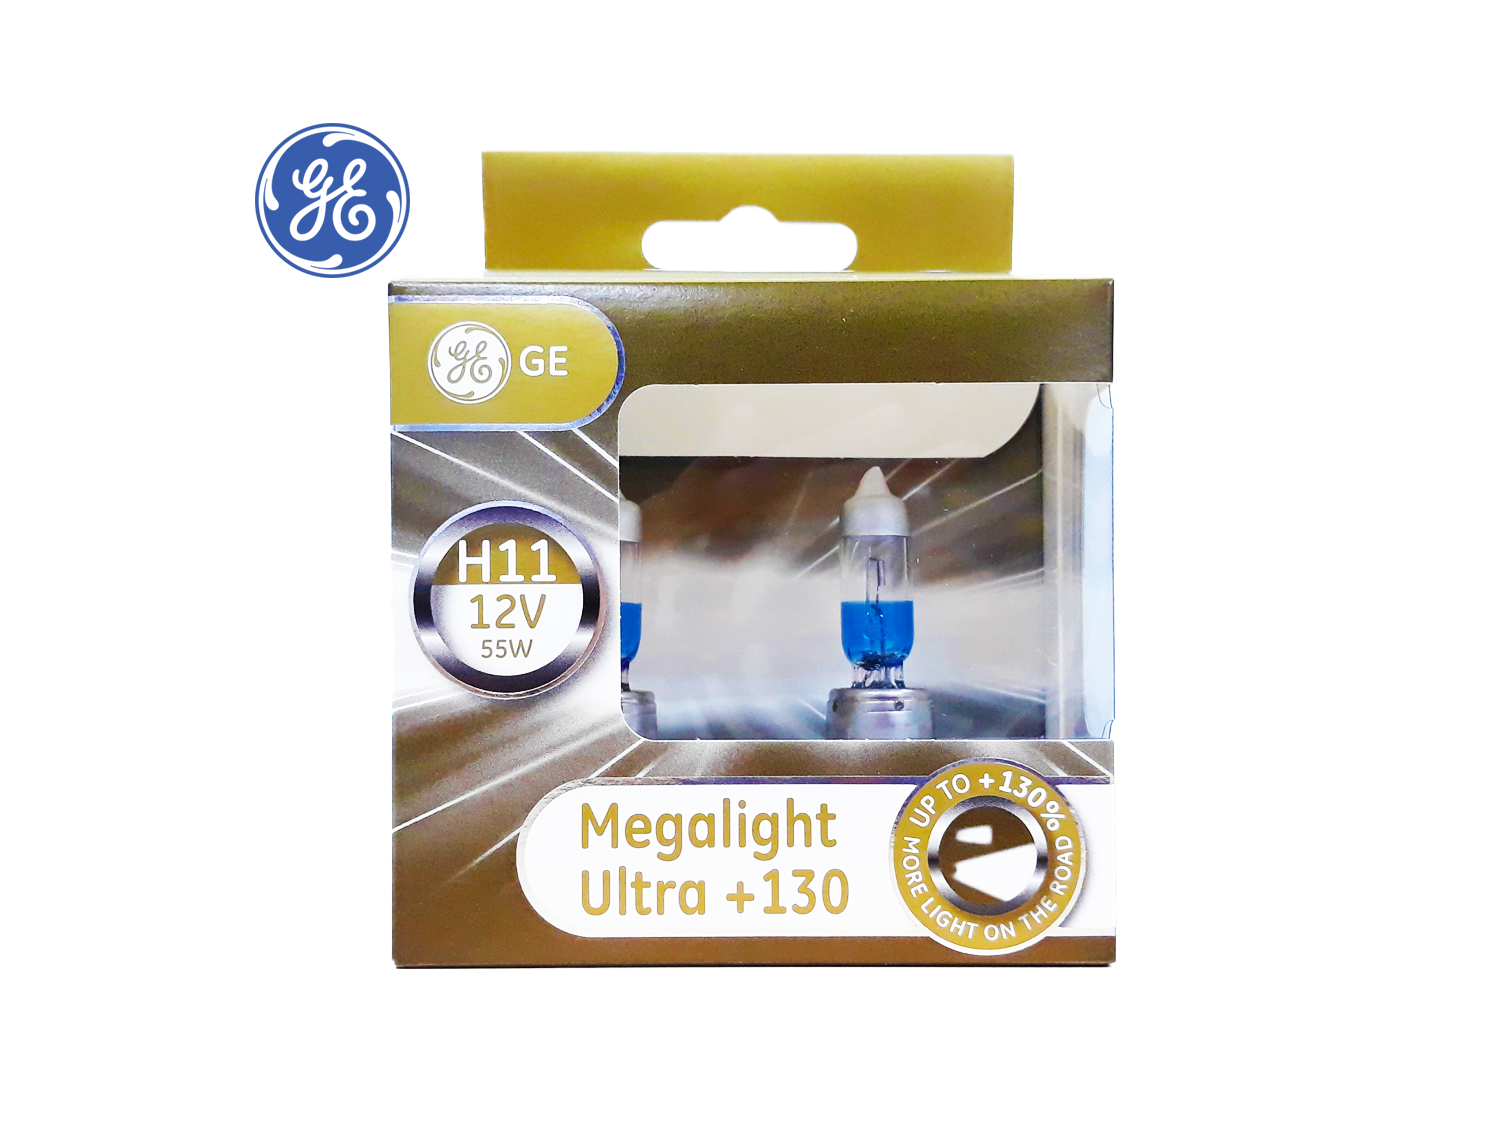 GE H11 +130% Megalight Ultra Headlight lamps ; SKU: 93040088